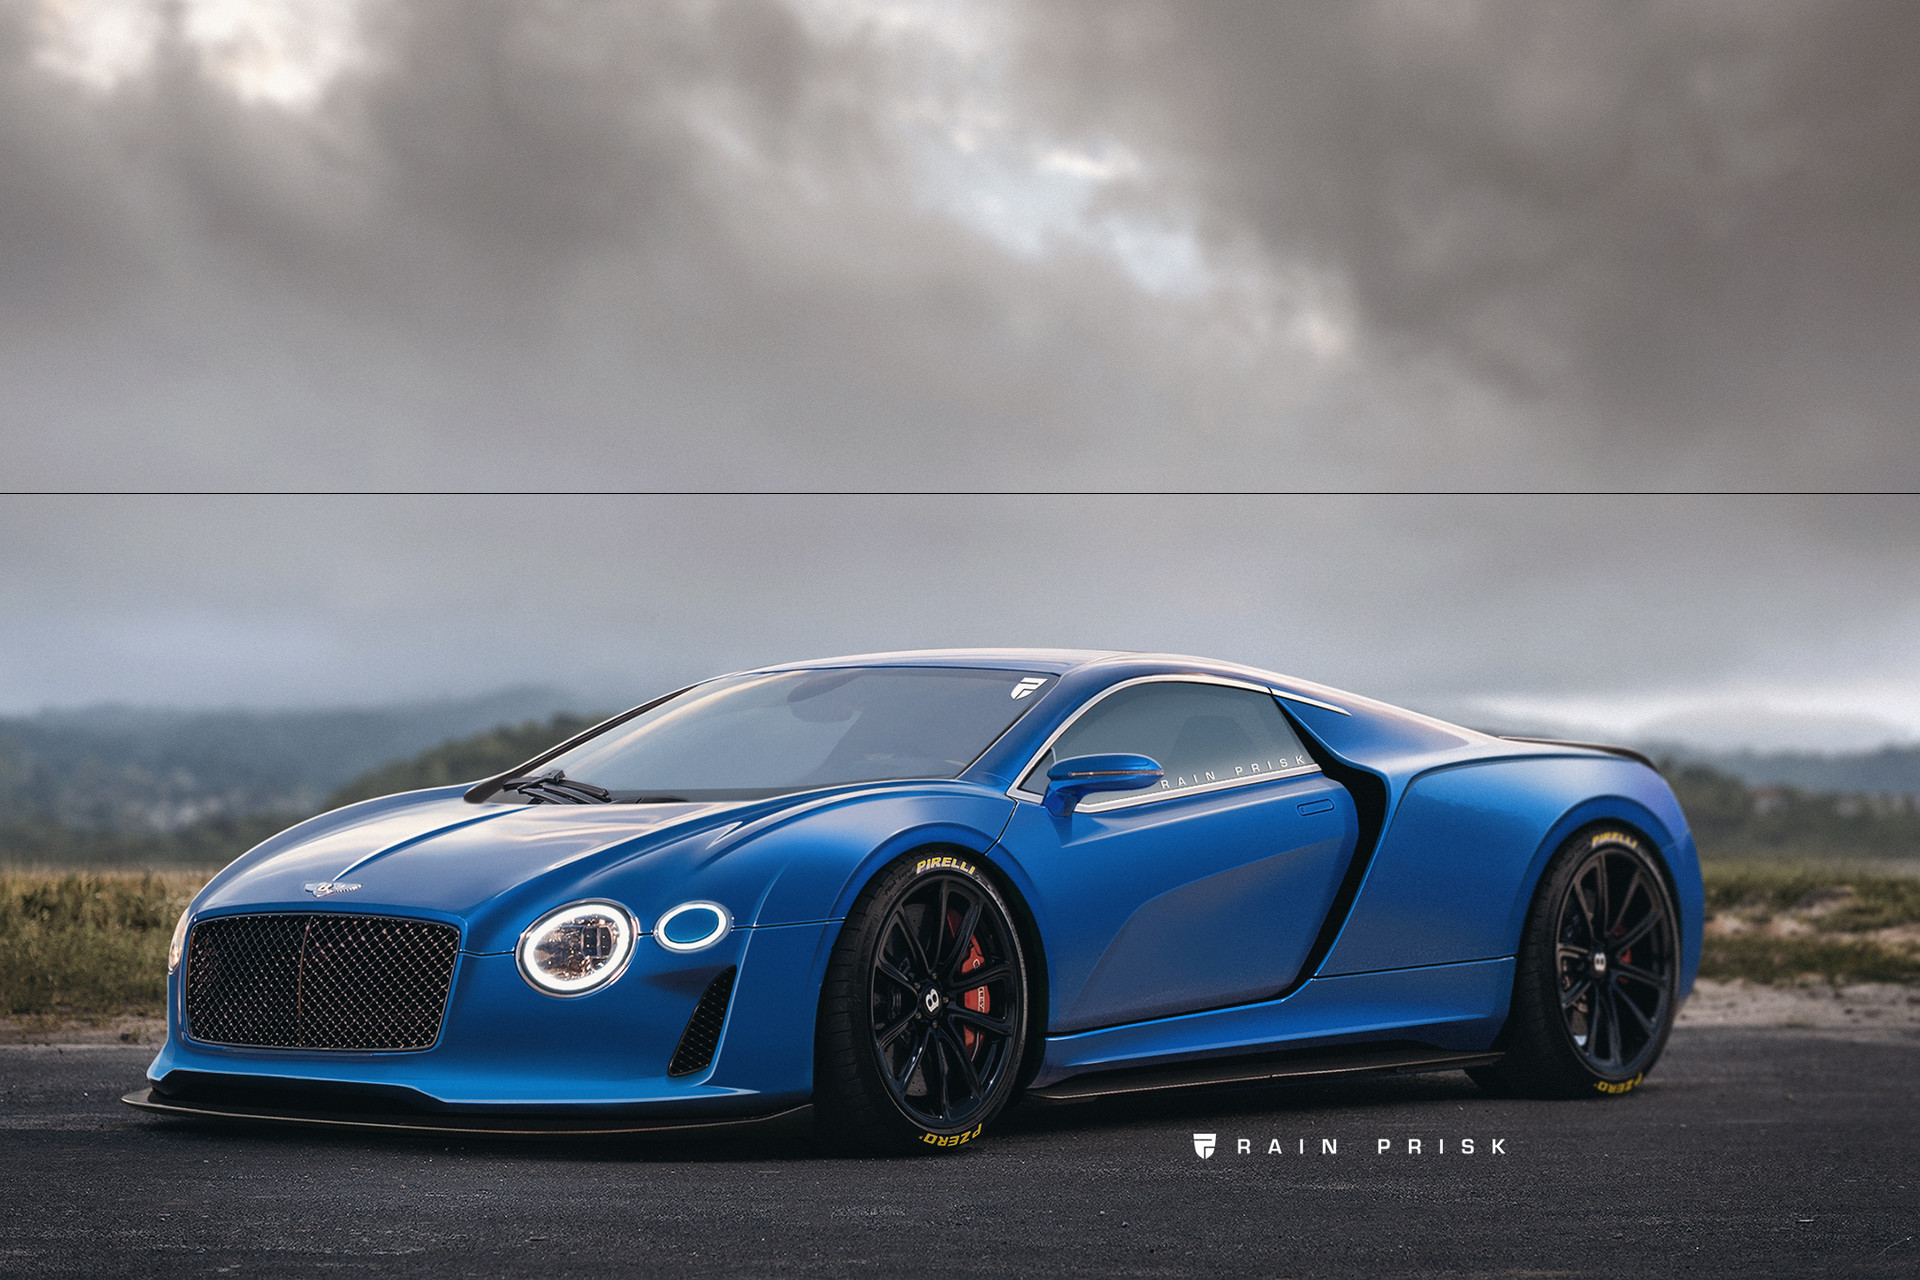 Rain prisk bentley supercar